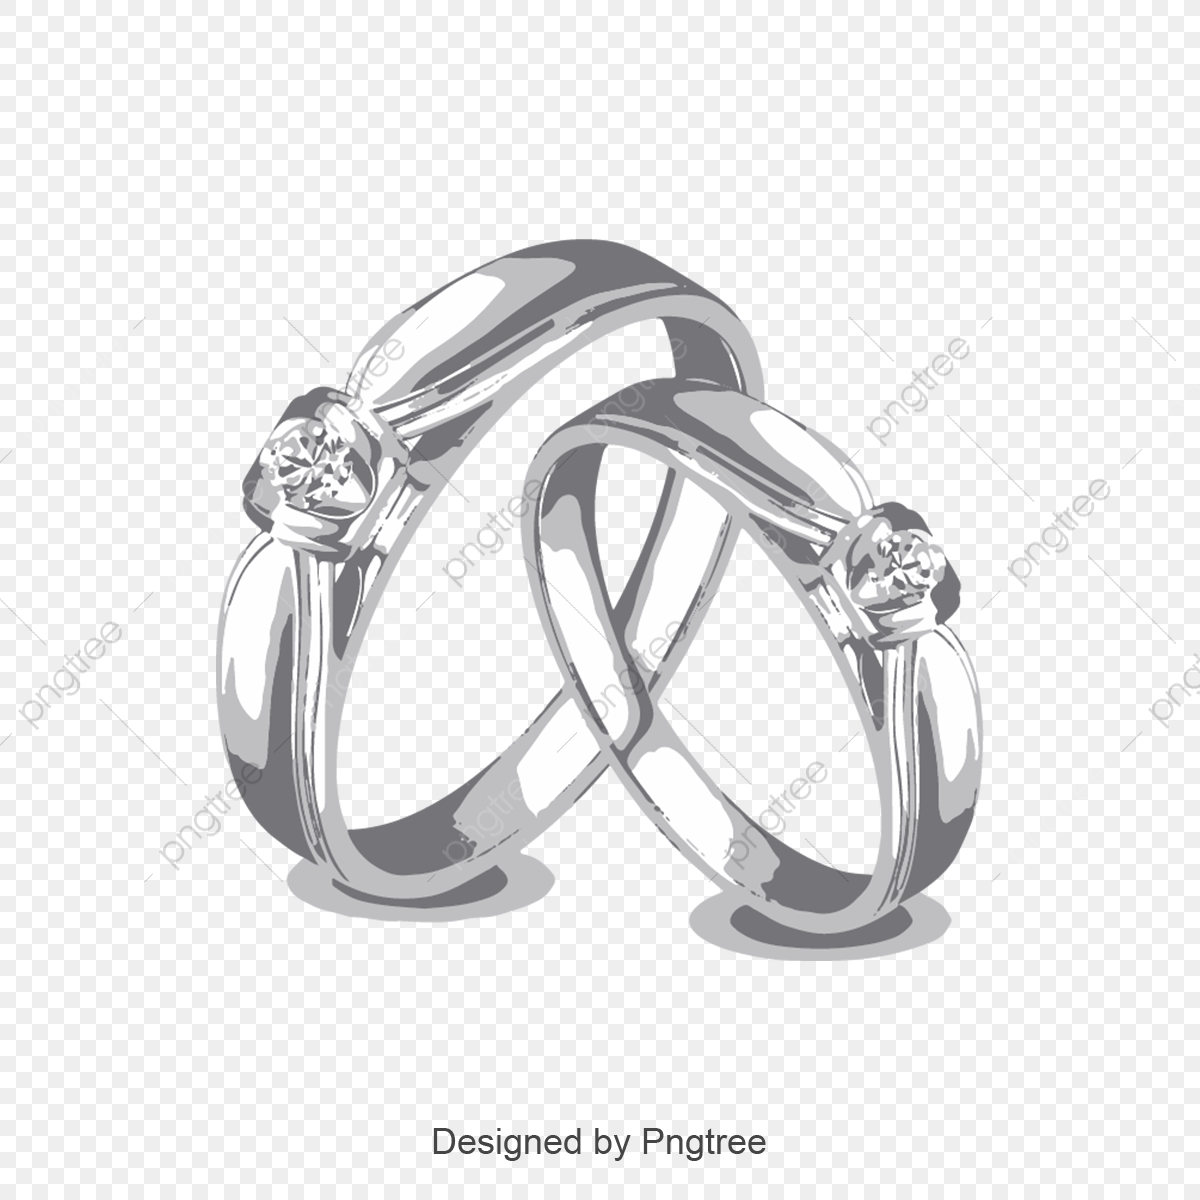 Ring Vector Png Images Rings Wedding Ring Smoke Ring Vectors In Ai Eps Format Free Download On Pngtree